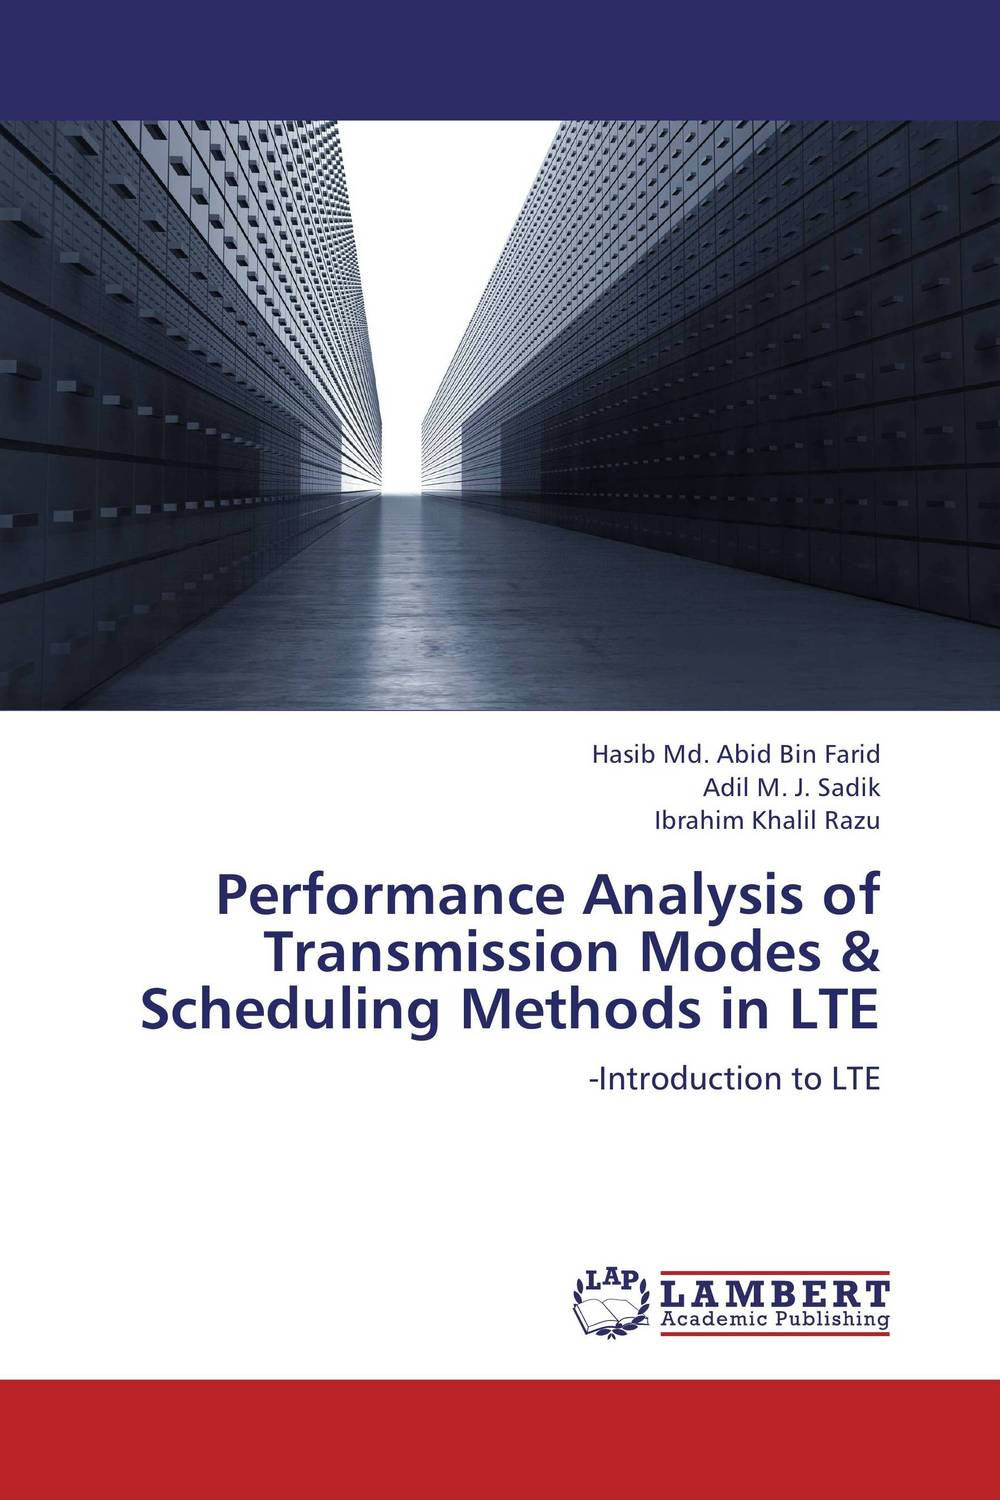 Performance Analysis of Transmission Modes & Scheduling Methods in LTE belousov a security features of banknotes and other documents methods of authentication manual денежные билеты бланки ценных бумаг и документов